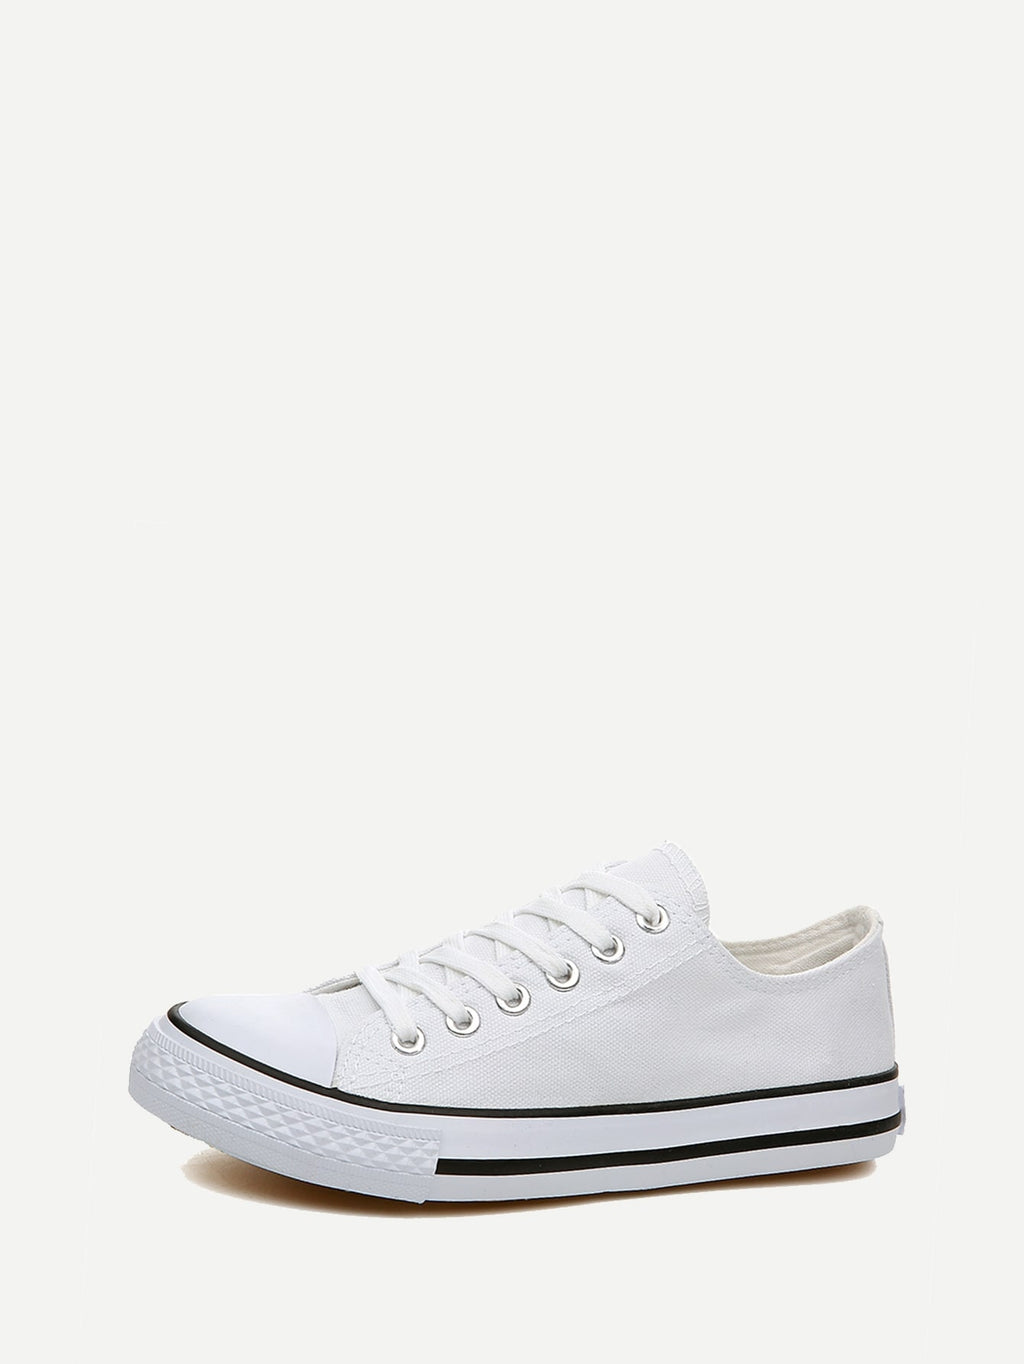 Men's Shoes - Lace-up Canvas Sneakers